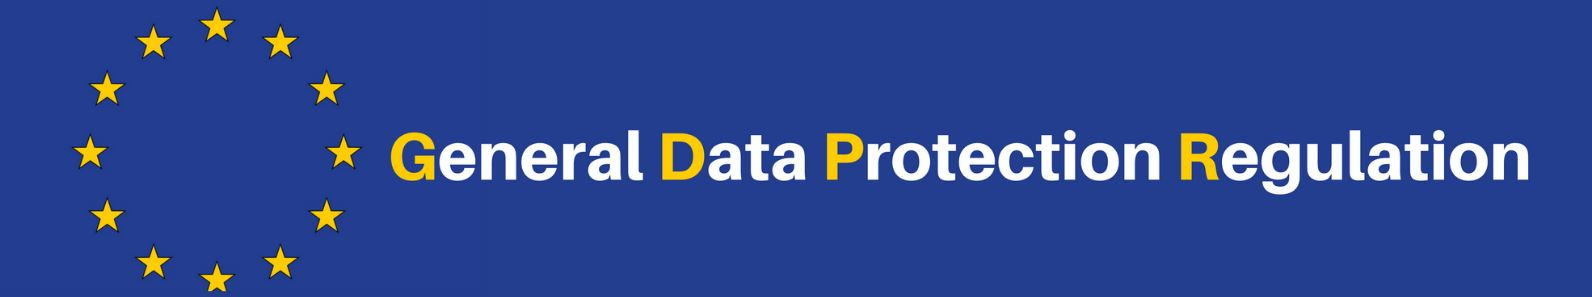 The General Data Protection Regulation (GDPR) comes into force on 25 May 2018